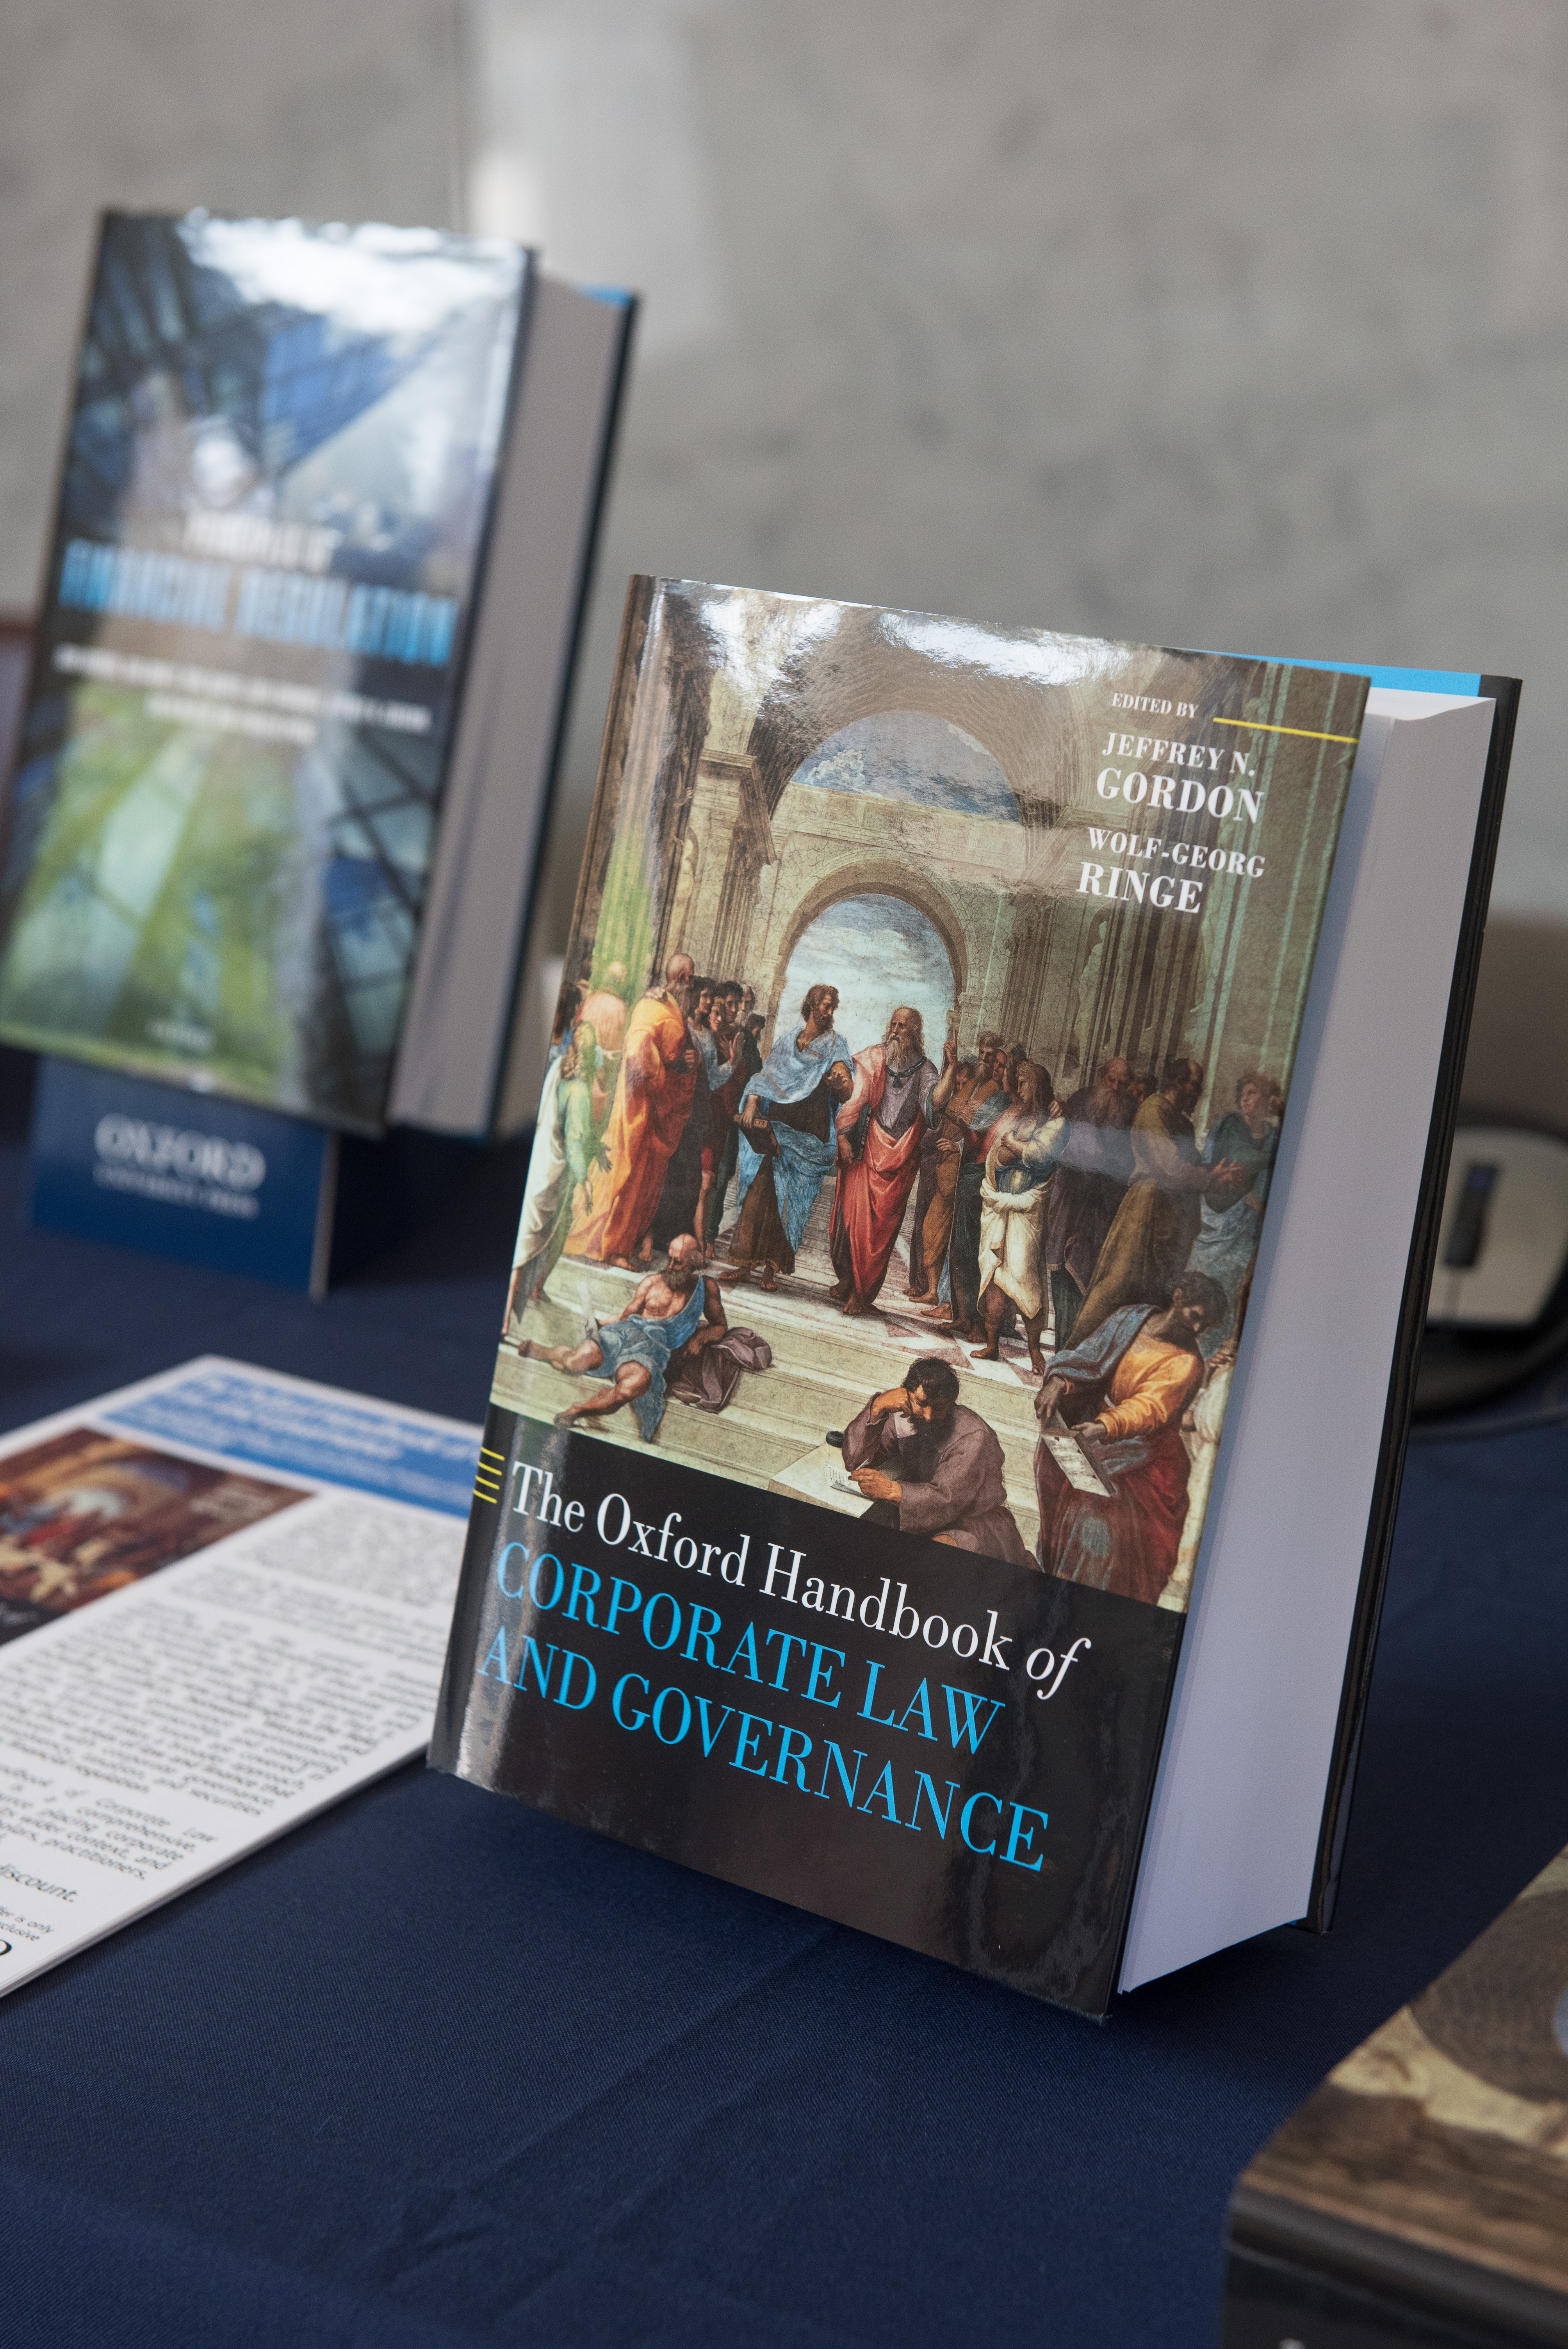 Book Launch: The Oxford Handbook of Corporate Law and